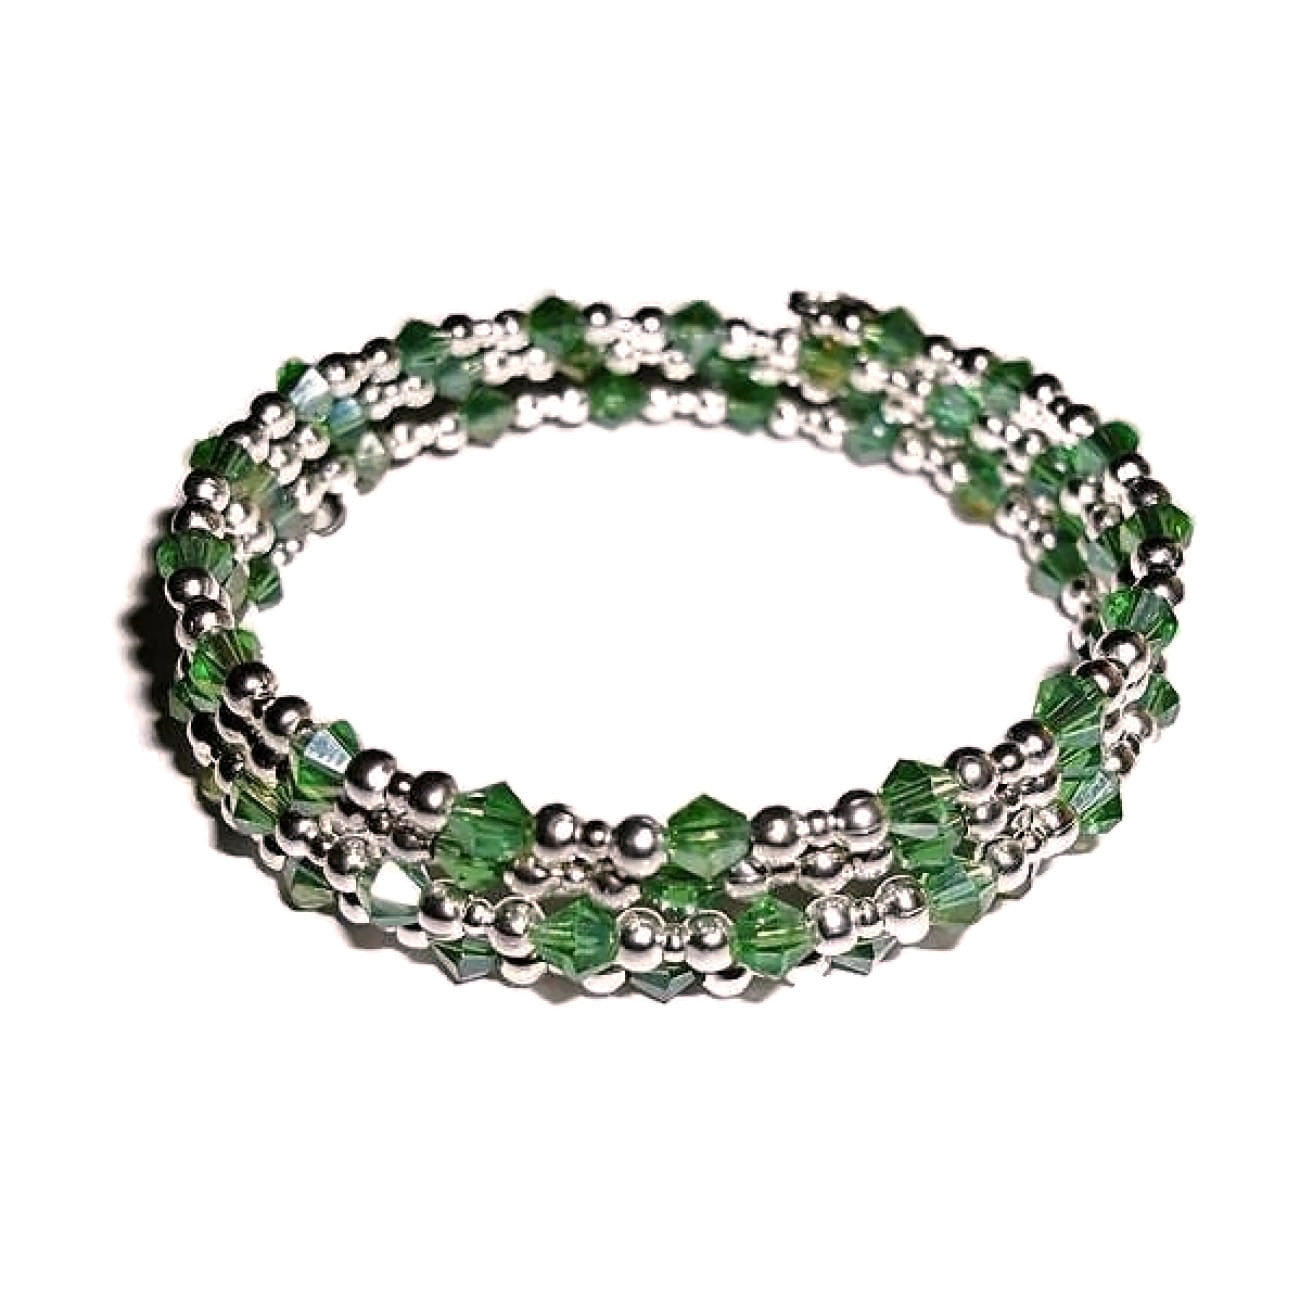 Baker  / Pastry Chef Green Swarovski Crystal Silver Artisan Crafted Wrap Bangle Bracelet(M-L)